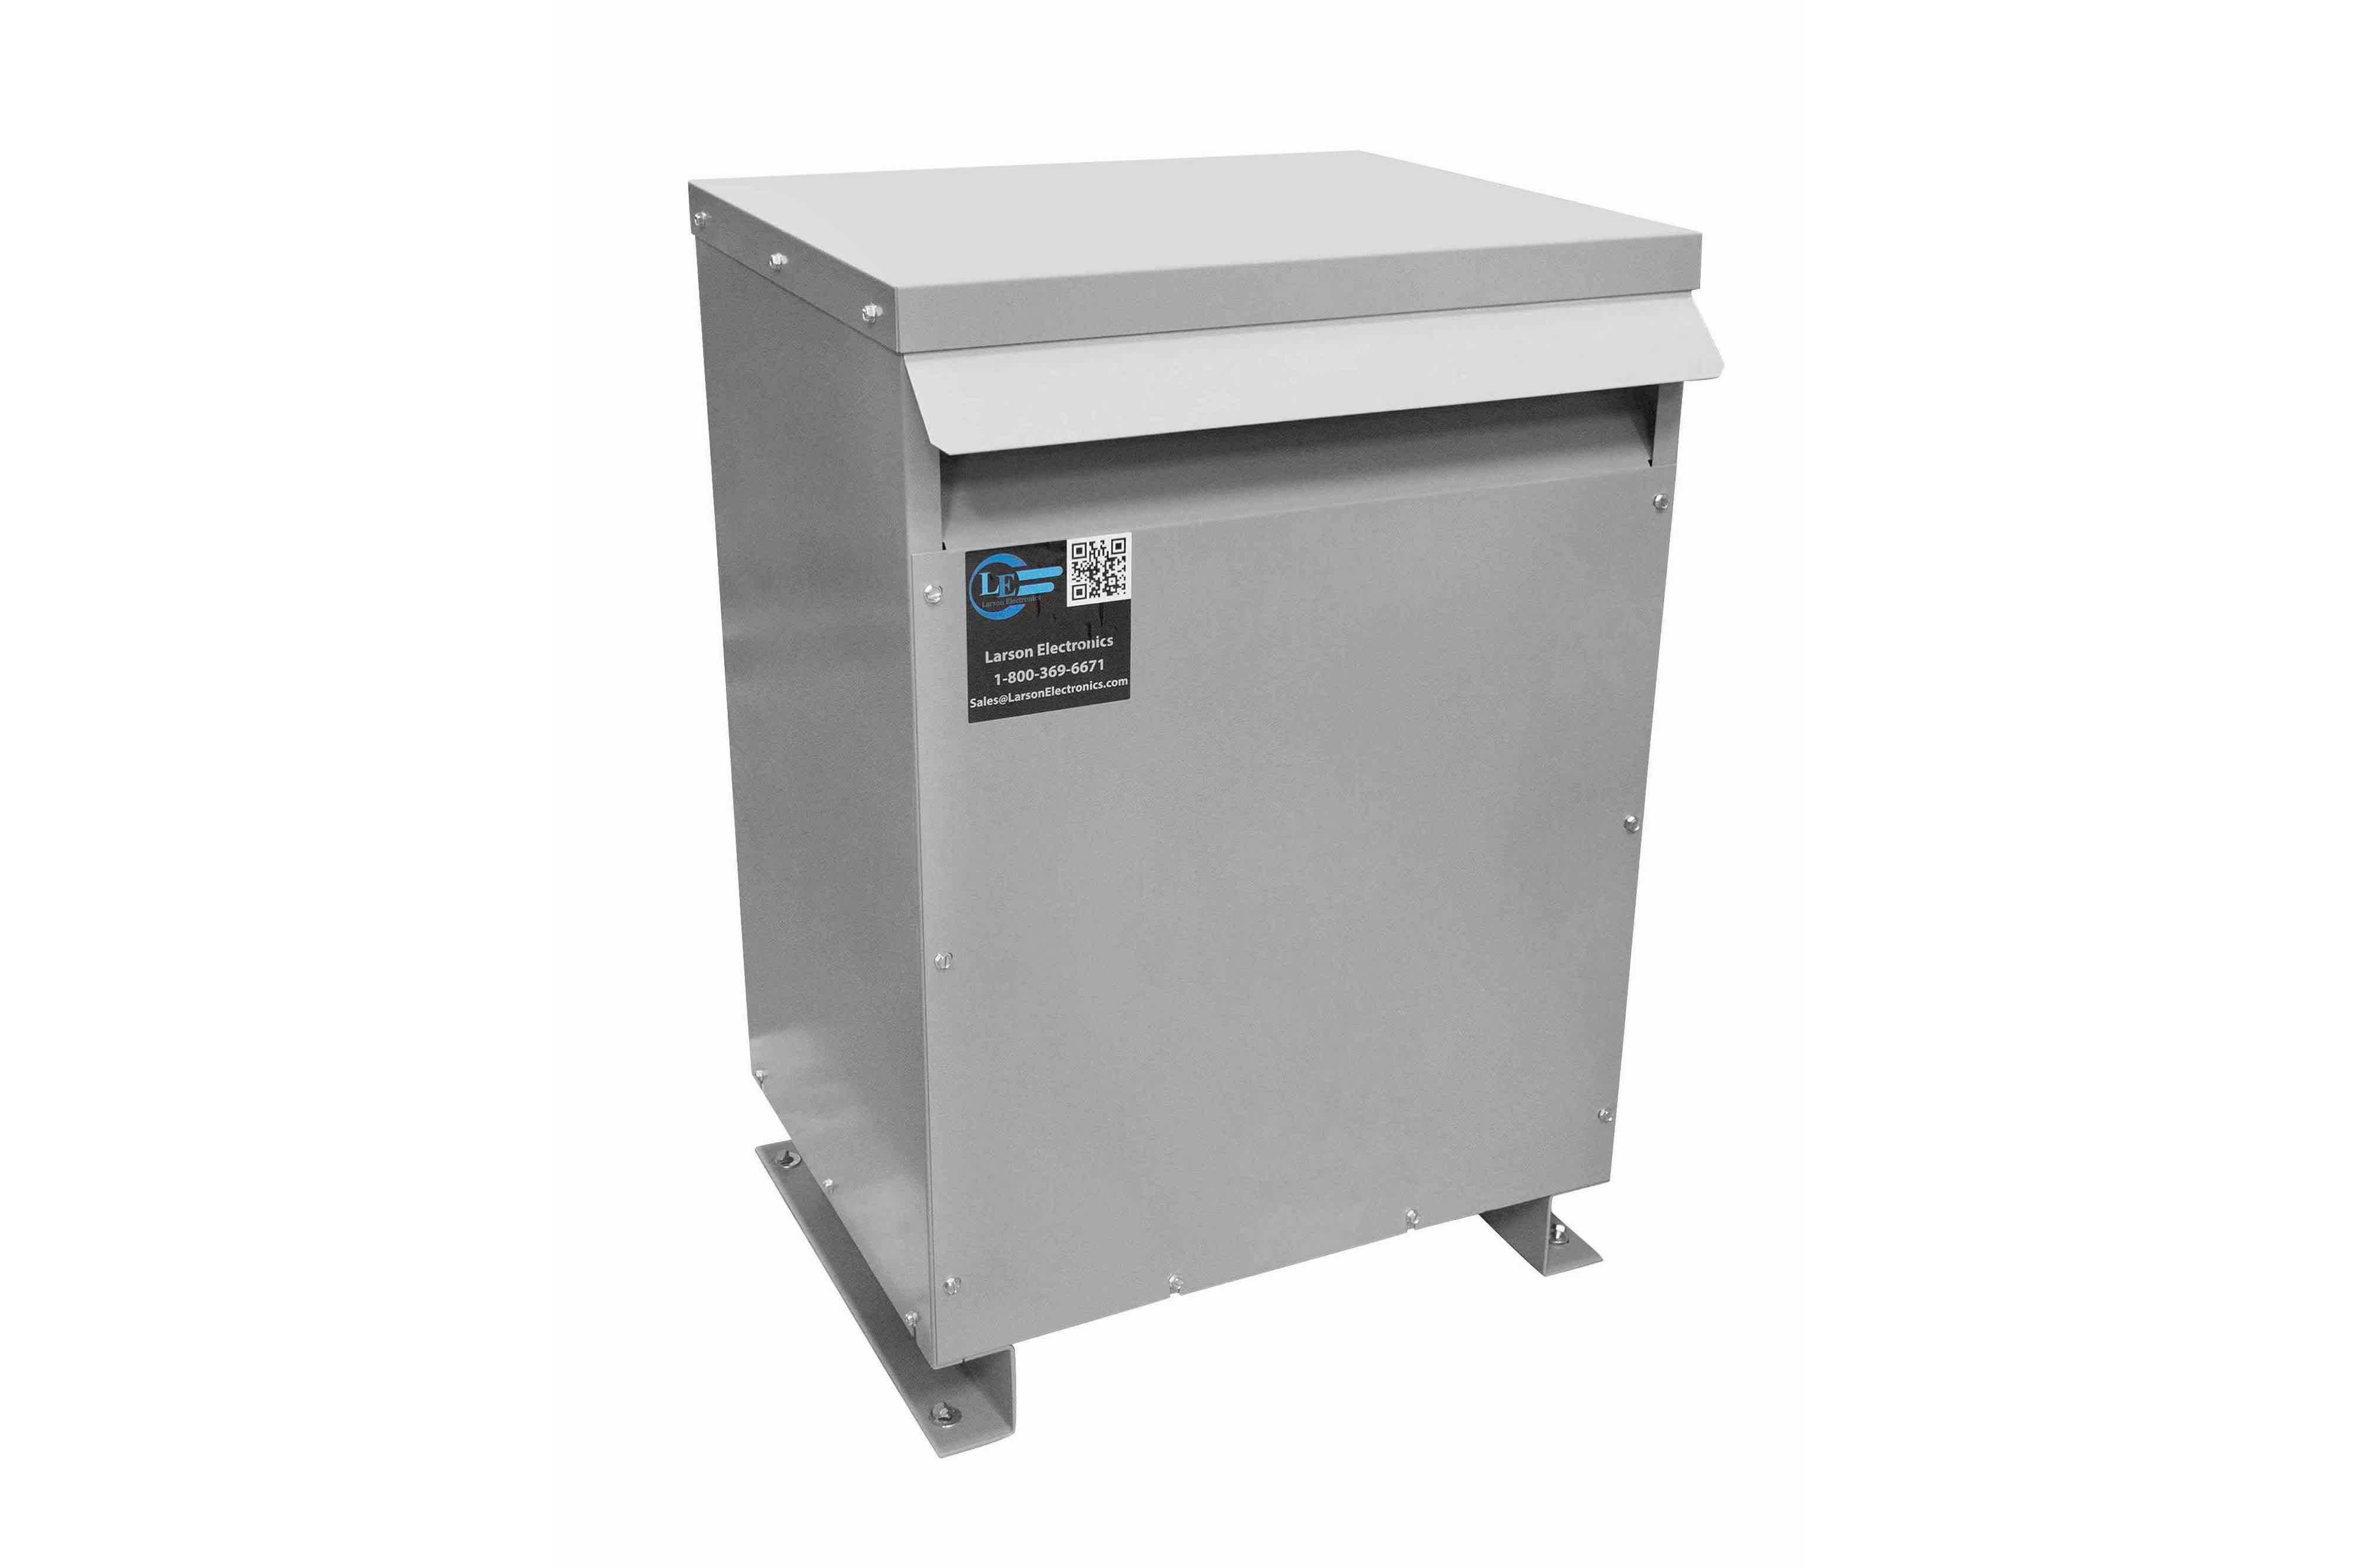 75 kVA 3PH Isolation Transformer, 600V Wye Primary, 240V/120 Delta Secondary, N3R, Ventilated, 60 Hz